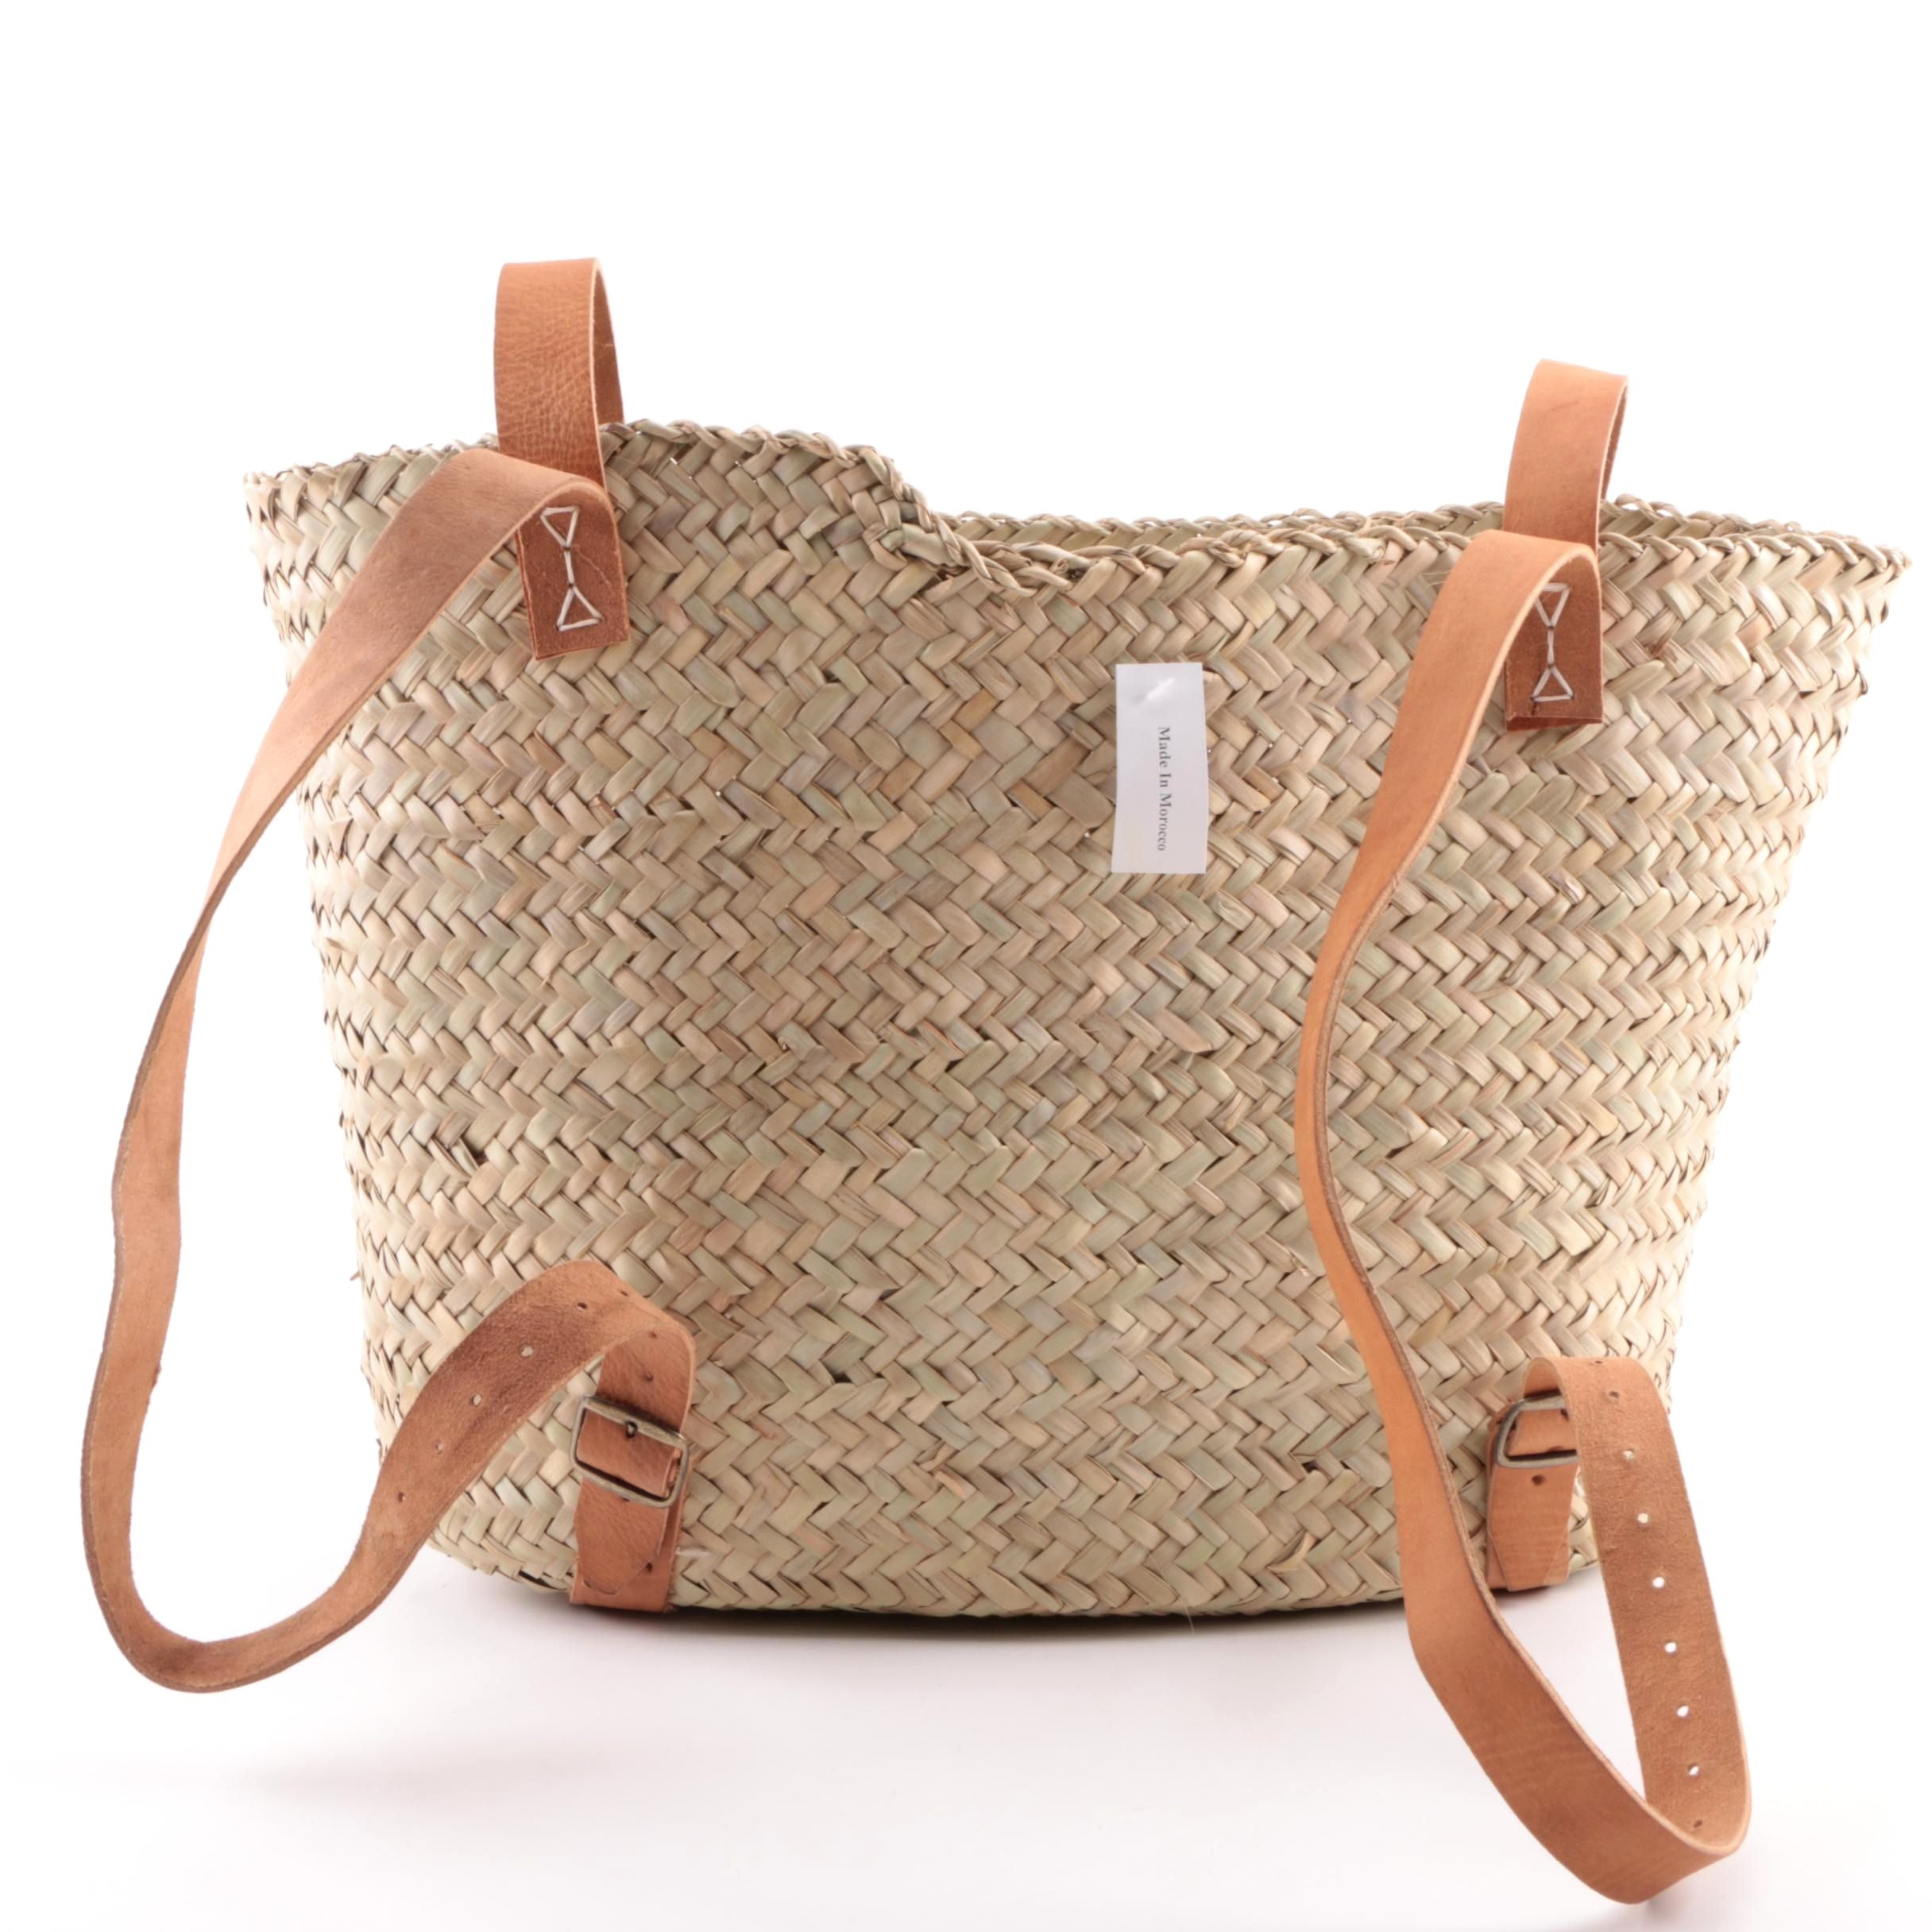 Moroccan Woven Straw Backpack